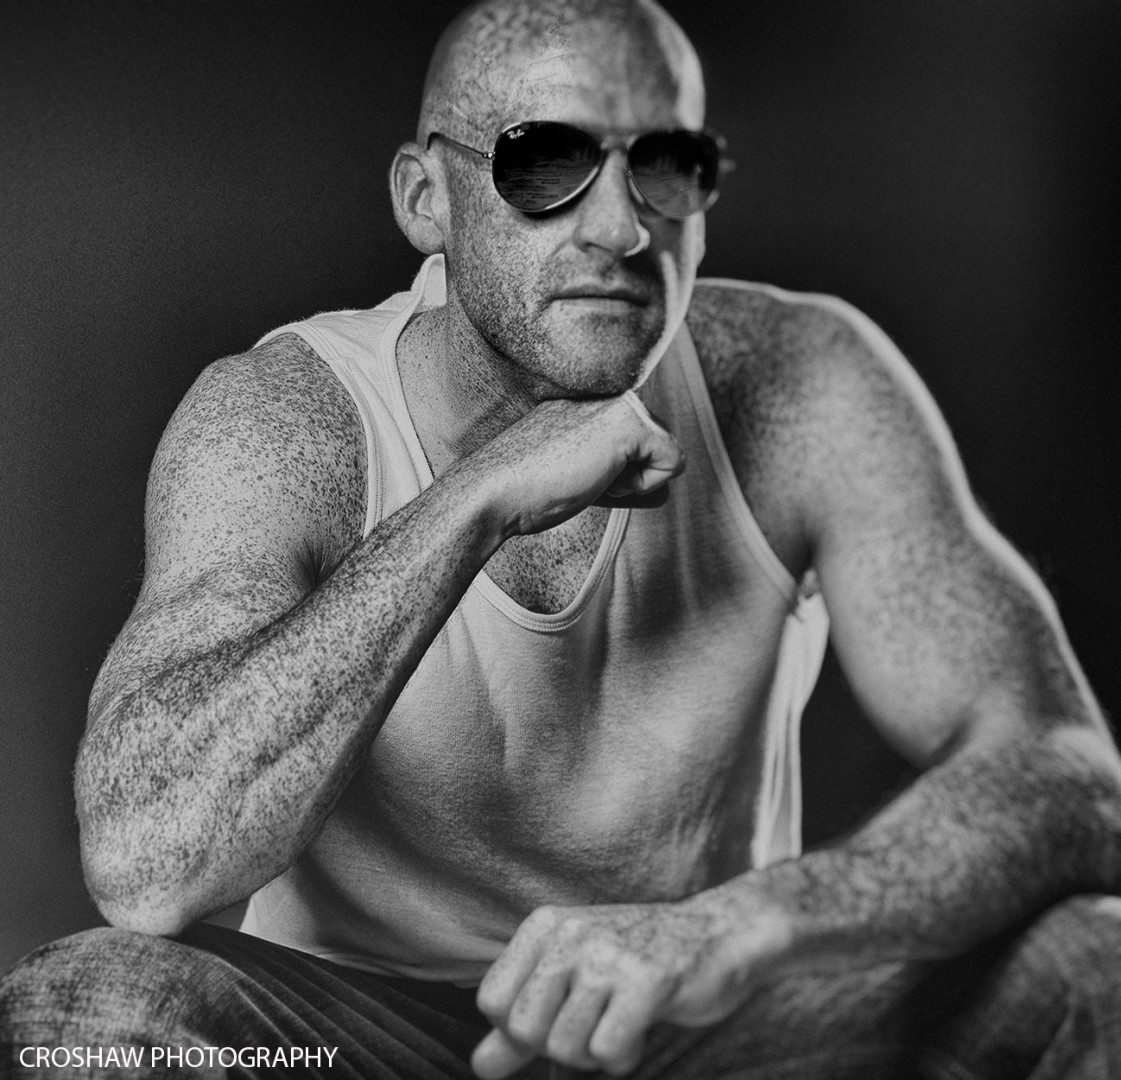 From a shoot with Mike Croshaw.